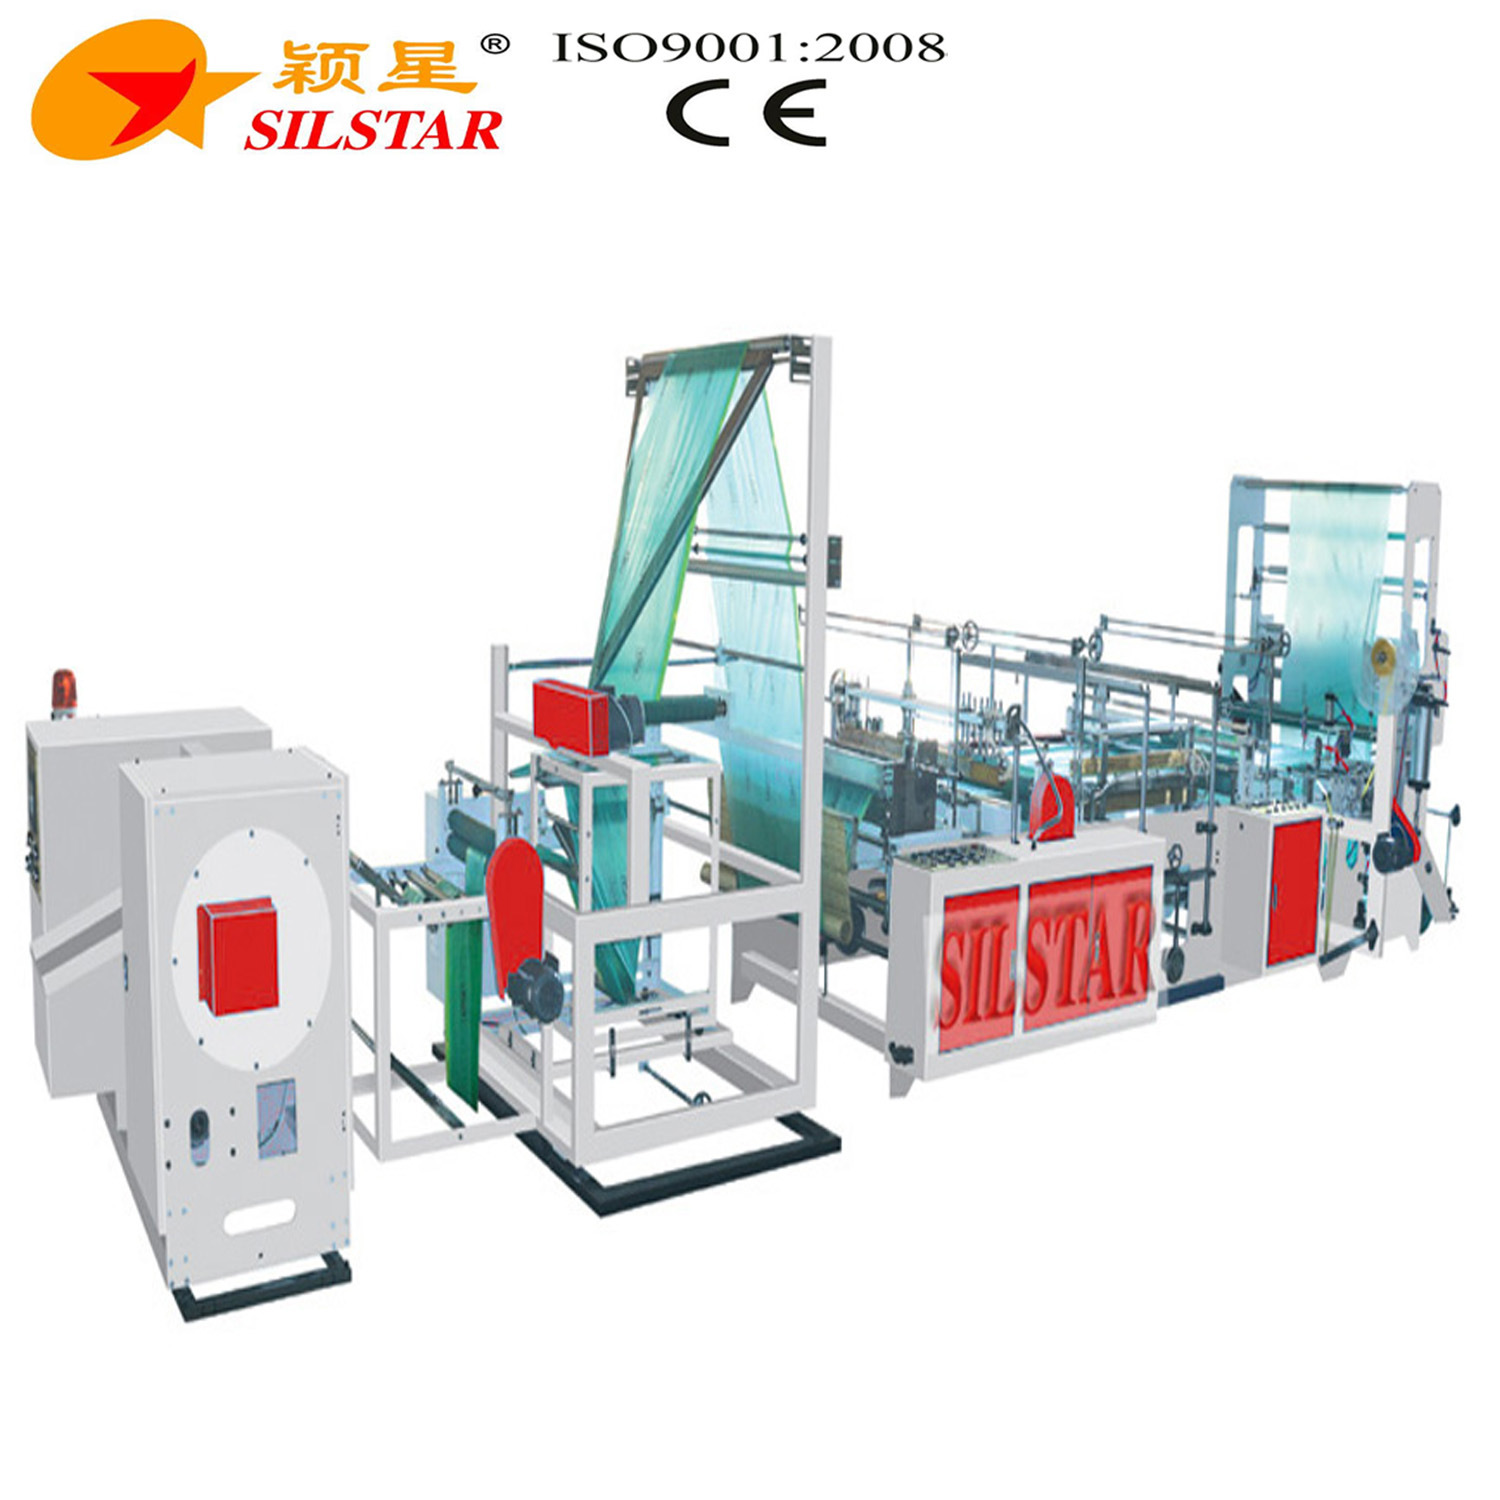 Gbbcr-1000II Automatic Draw Strings Garbage Bag Making Machine